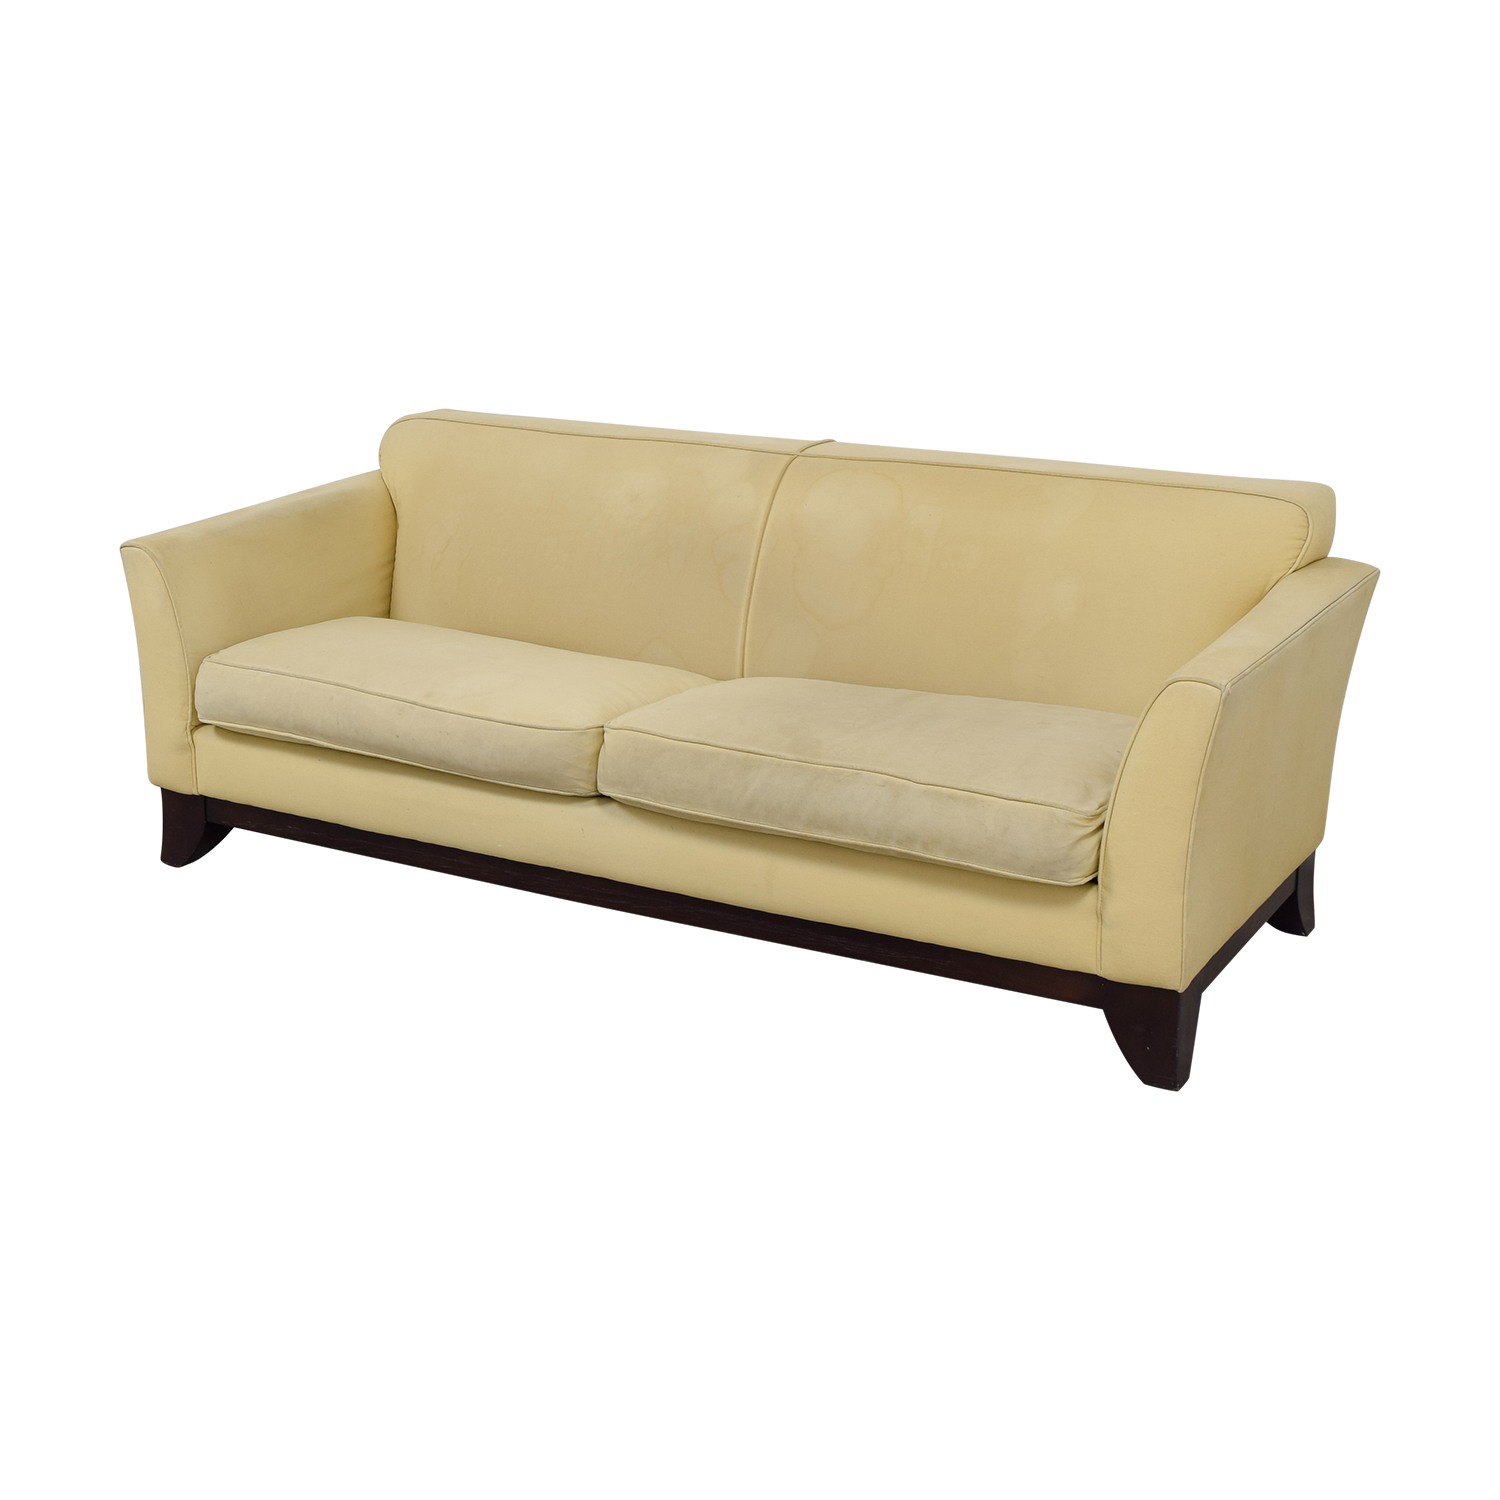 pottery barn sofa for sale by owner most comfortable sleeper sofas 90 off beige upholstered two